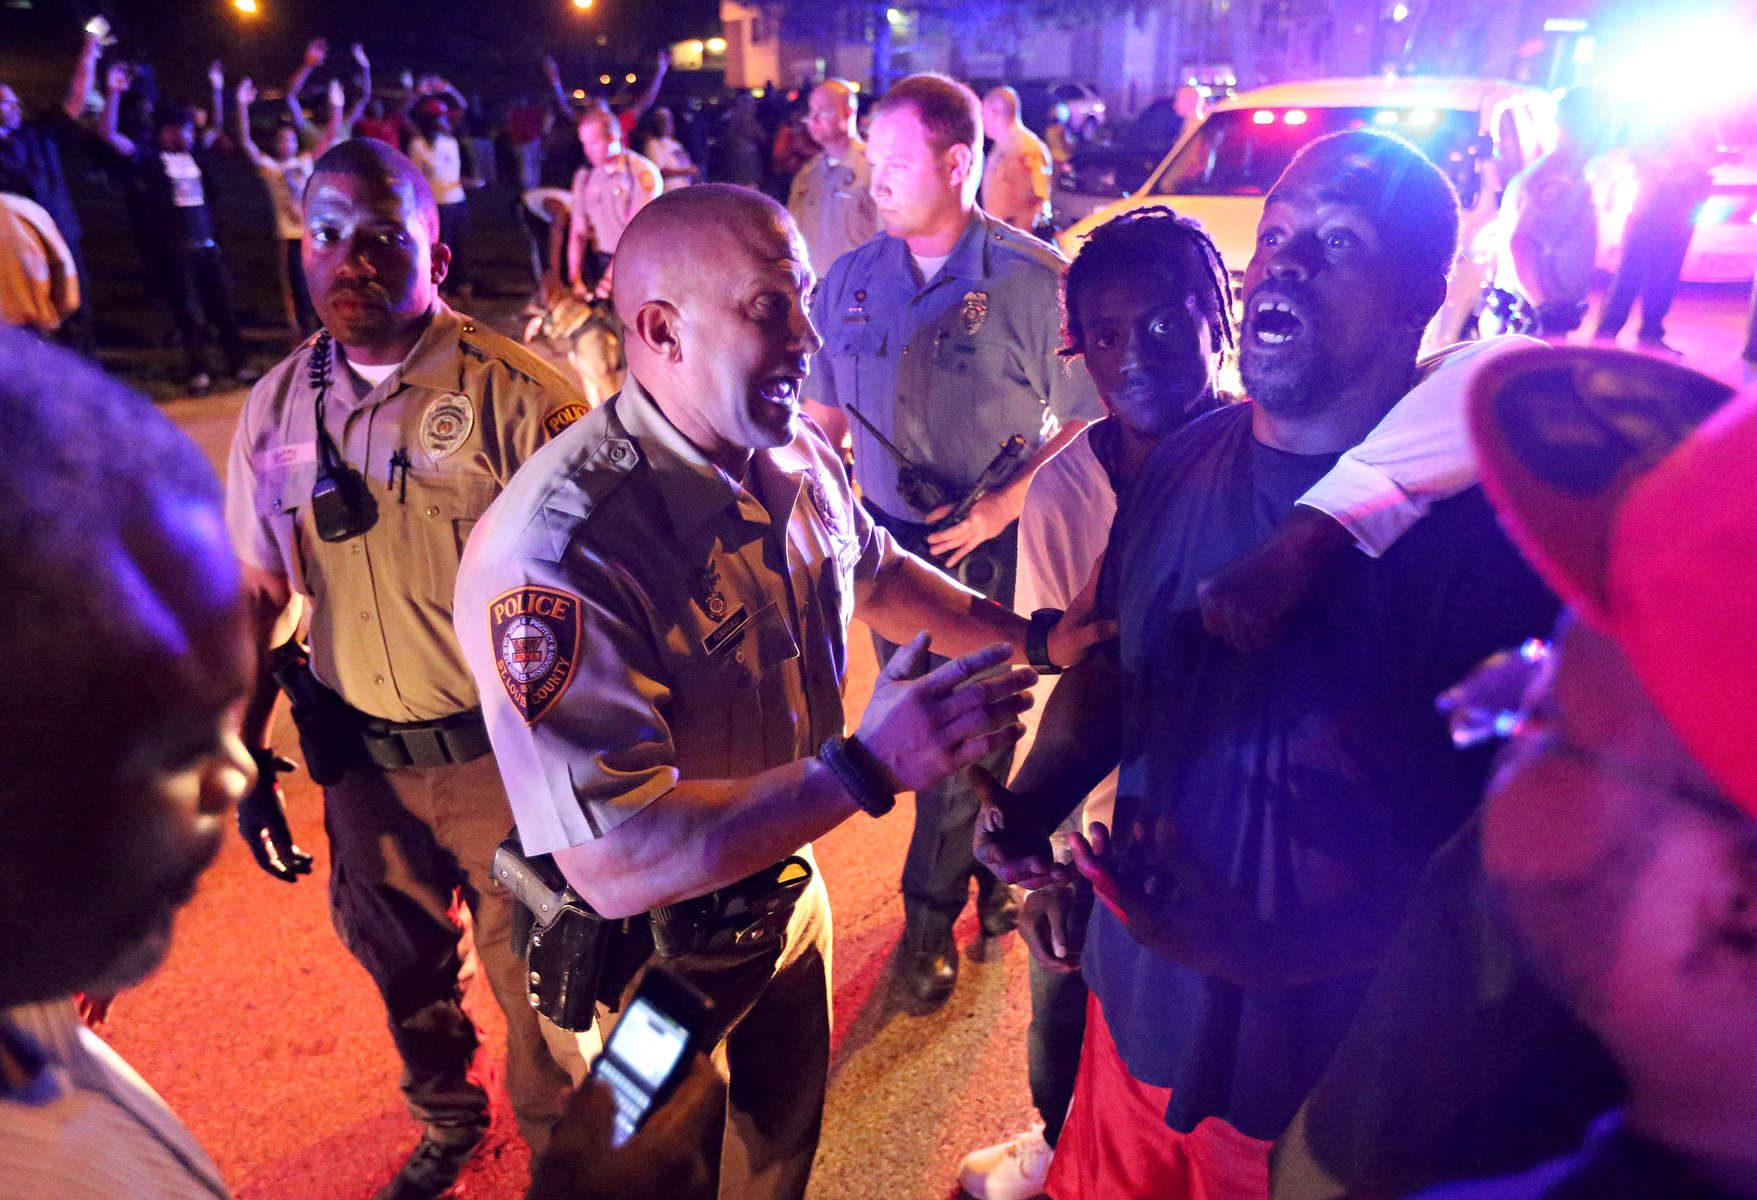 Police officers speak to a man as they try to calm down and break up a crowd on Canfield Dr. in Ferguson on Saturday, Aug. 9, 2014. Earlier in the day police had shot and killed Michael Brown, an unarmed18 year-old man, and community members turned out large numbers to express their outrage.  Police officers eventually withdrew from the apartment complex.